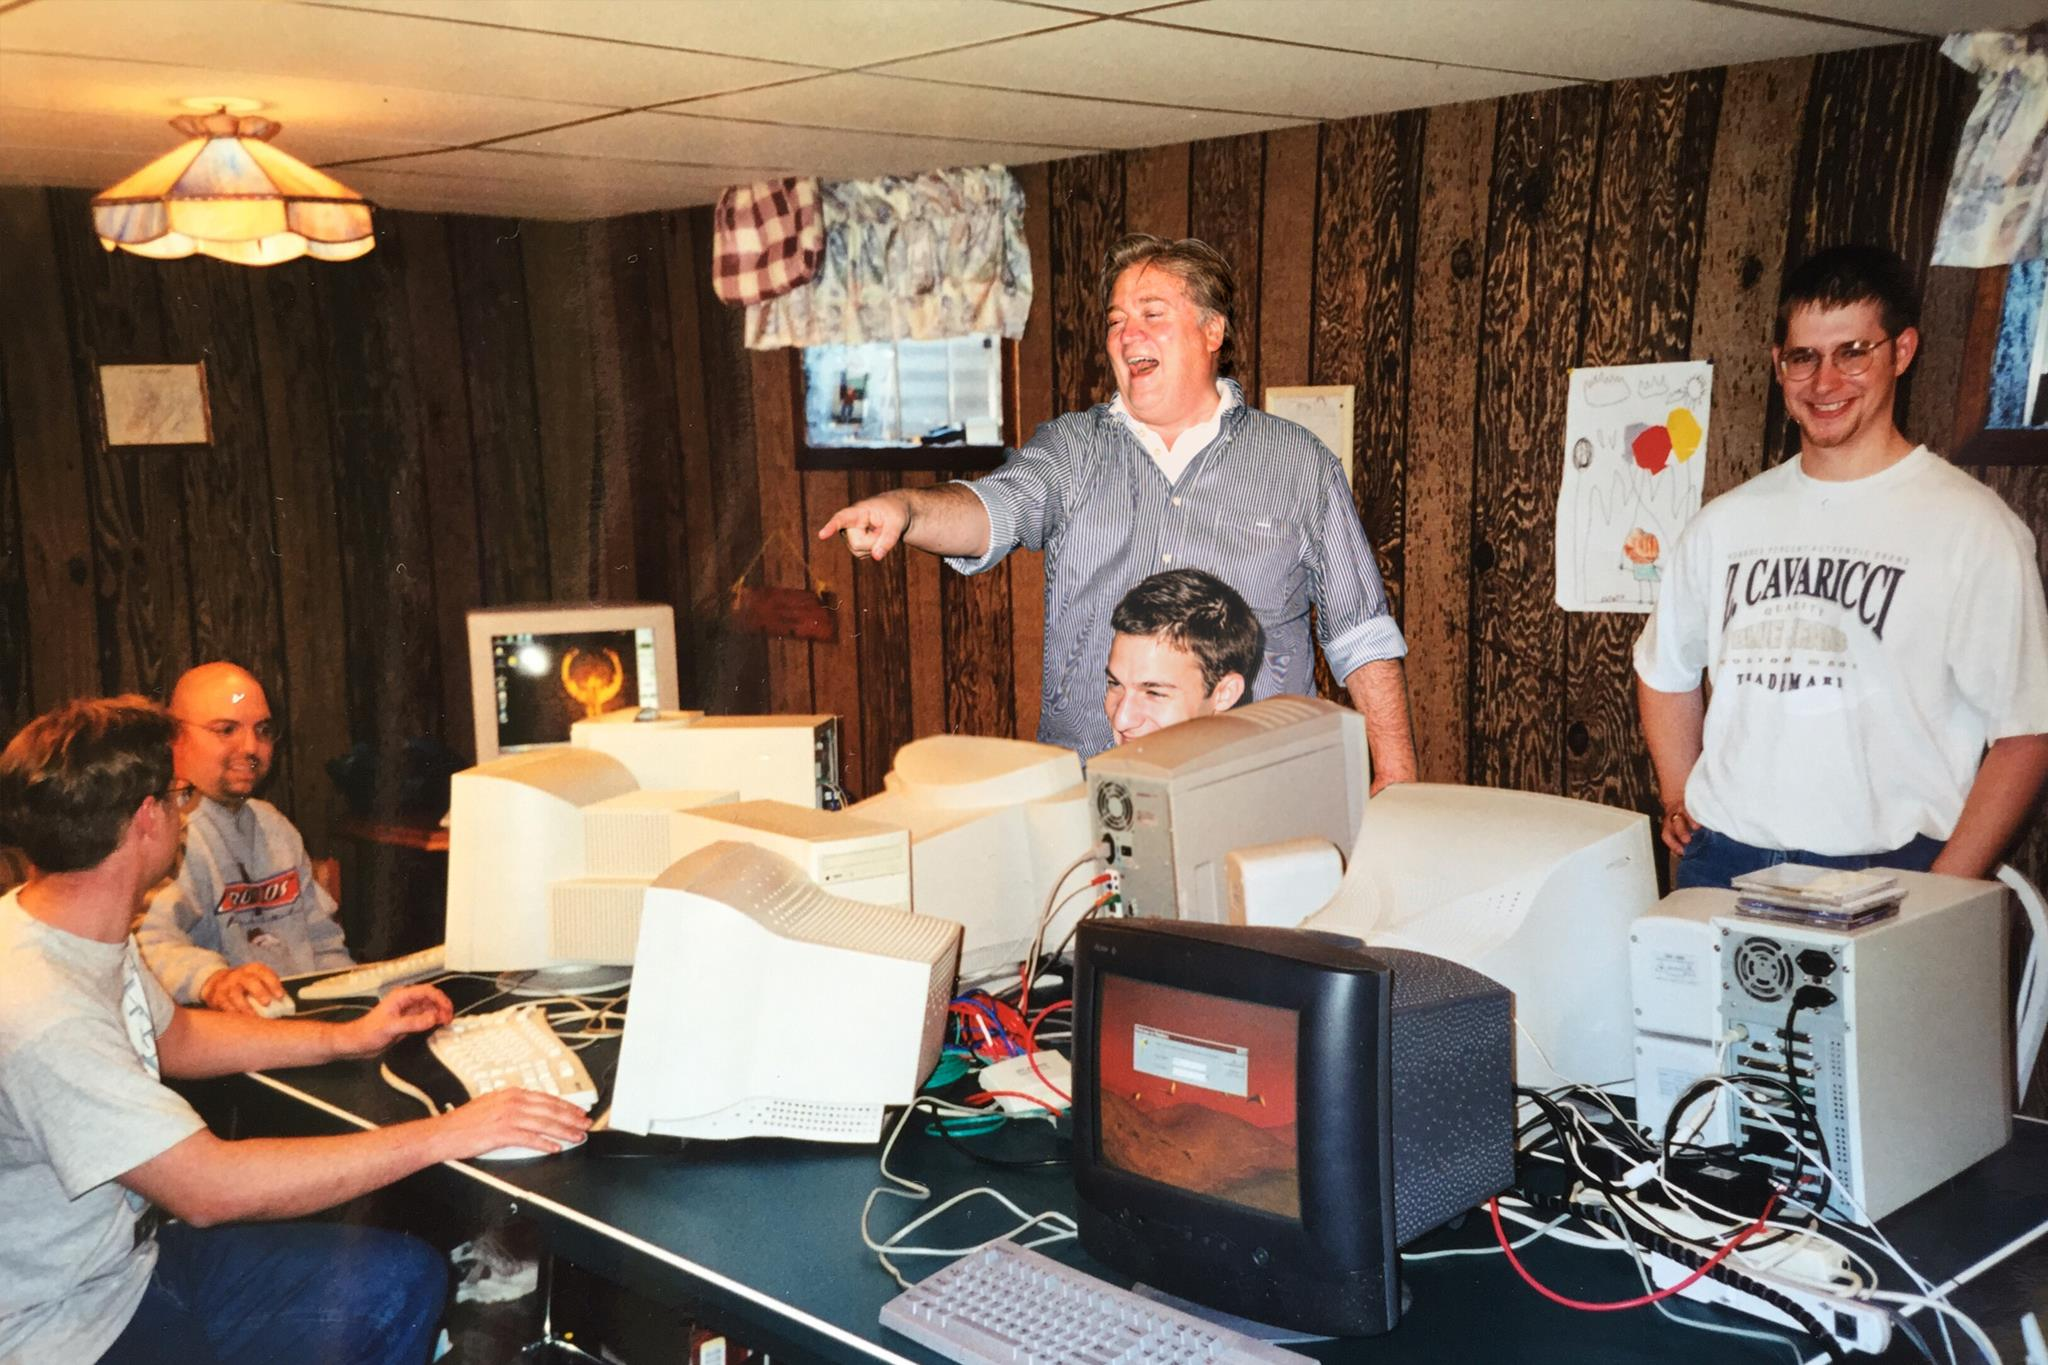 Steve Bannon's first LAN party 1998